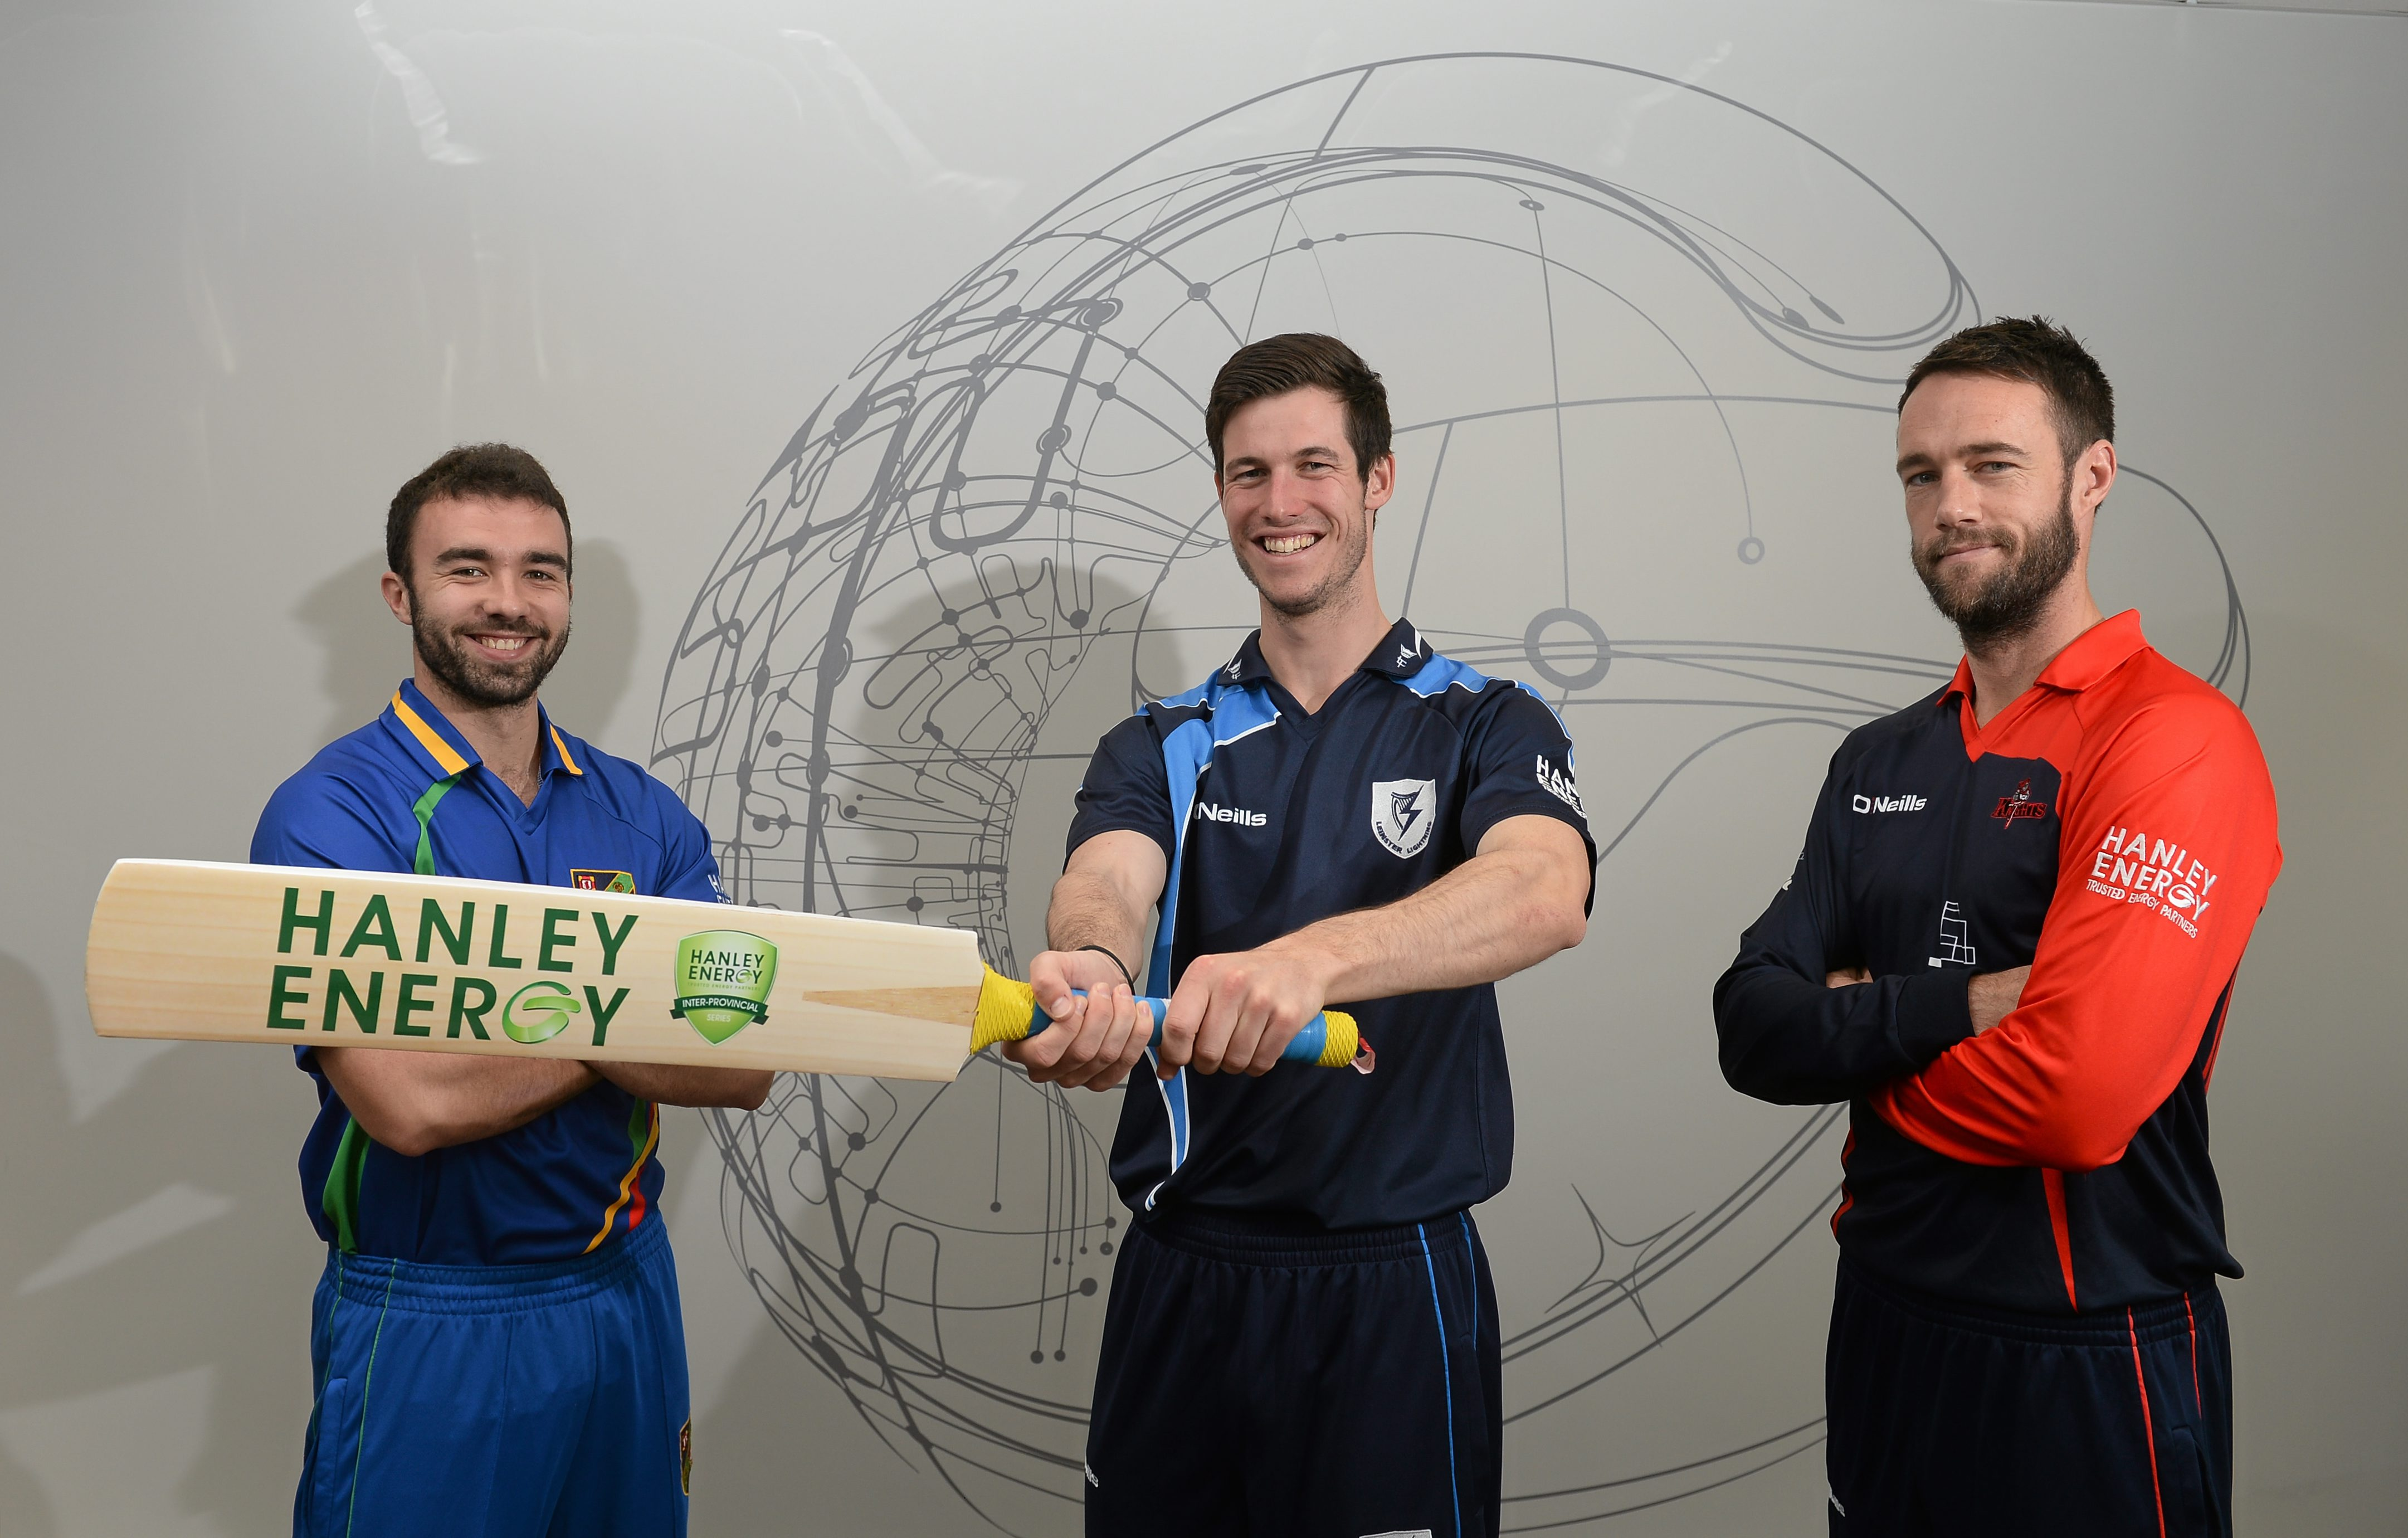 North West Warriors' Stuart Thompson,  Leinster Lightning's George Dockrell and Northern Knights' Nigel Jones at the launch of the 2016 Hanley Energy Inter-Provincial Series at Hanley Energy's headquarters in Stamullen, Co. Meath.